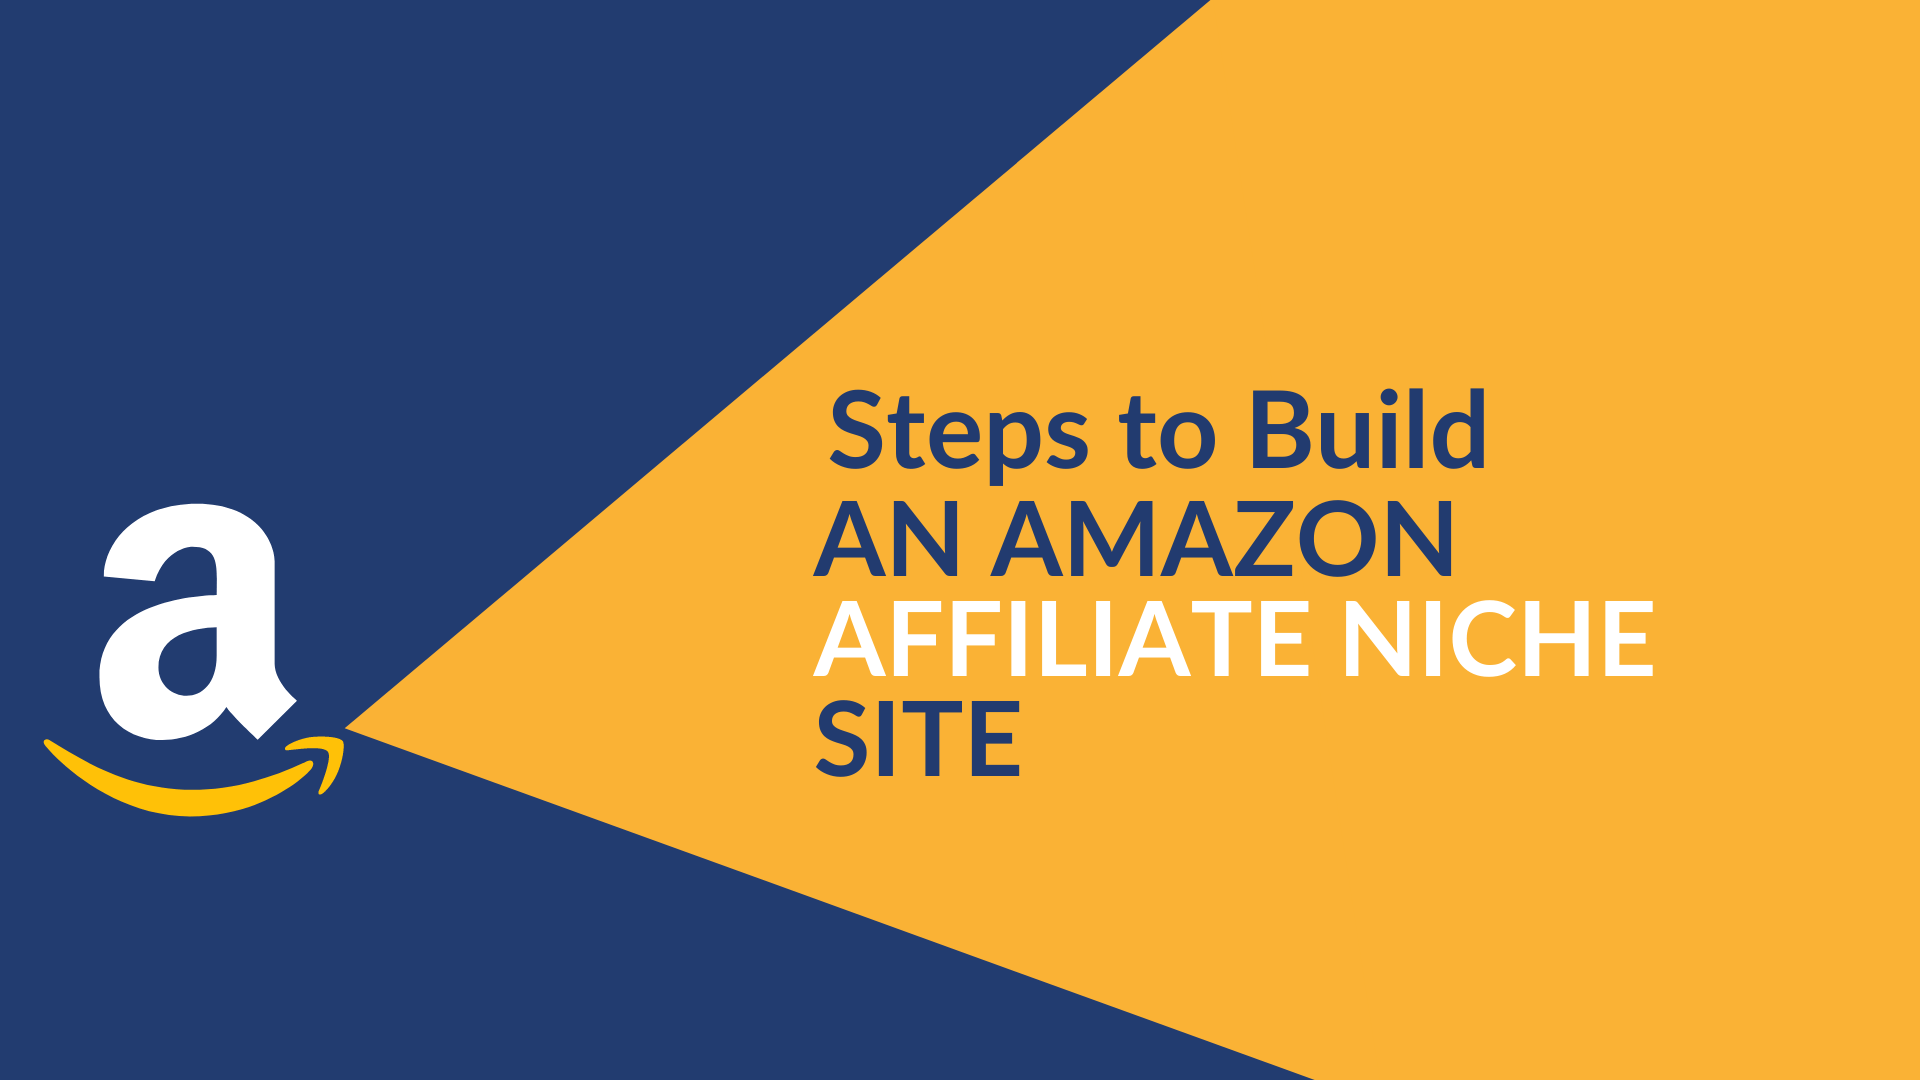 what are the steps to build an amazon affliate niche site.